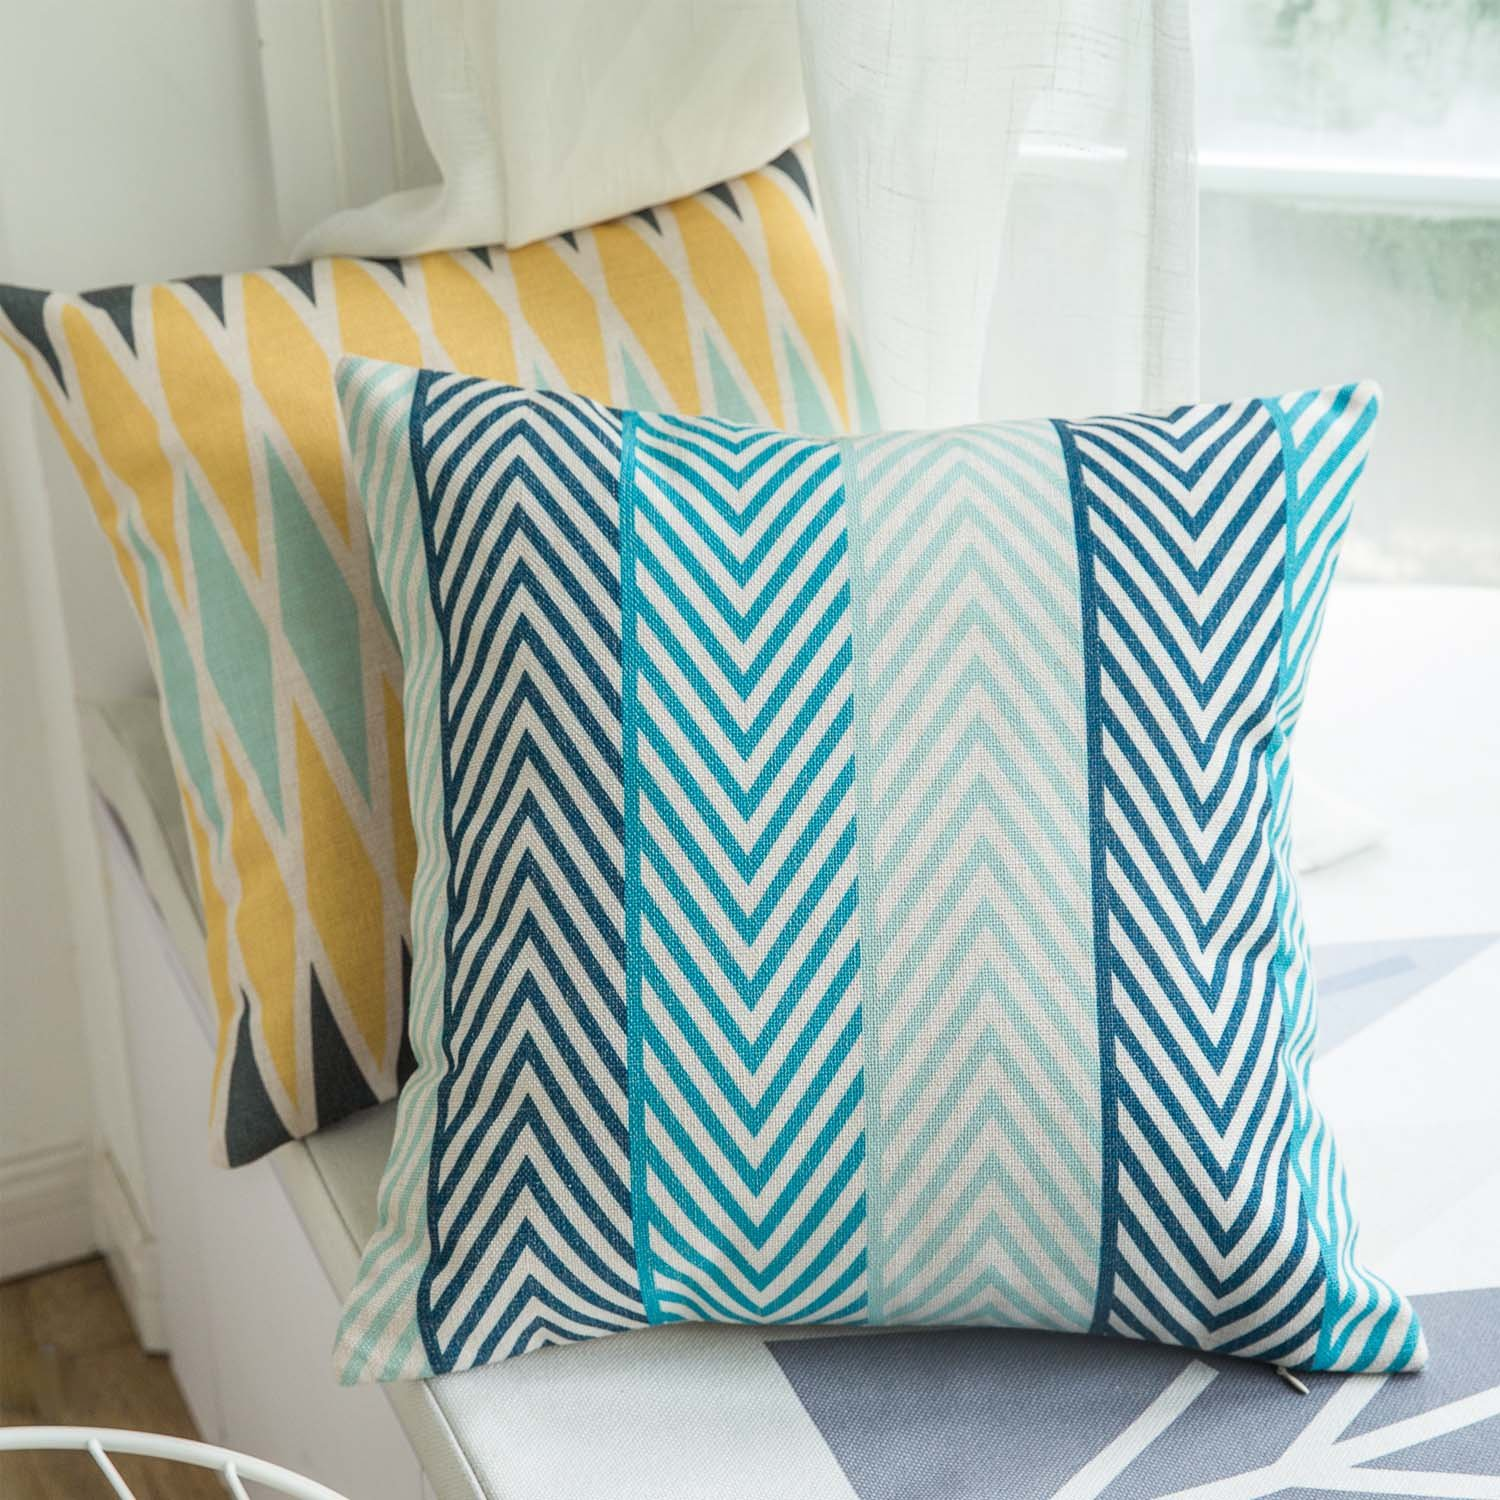 Ofat Home Colorful Dark Blue Streamline Style Decorative Throw Pillow Case Cotton Linen Cushion Cover 18 x 18 Inch for Home Sofa D